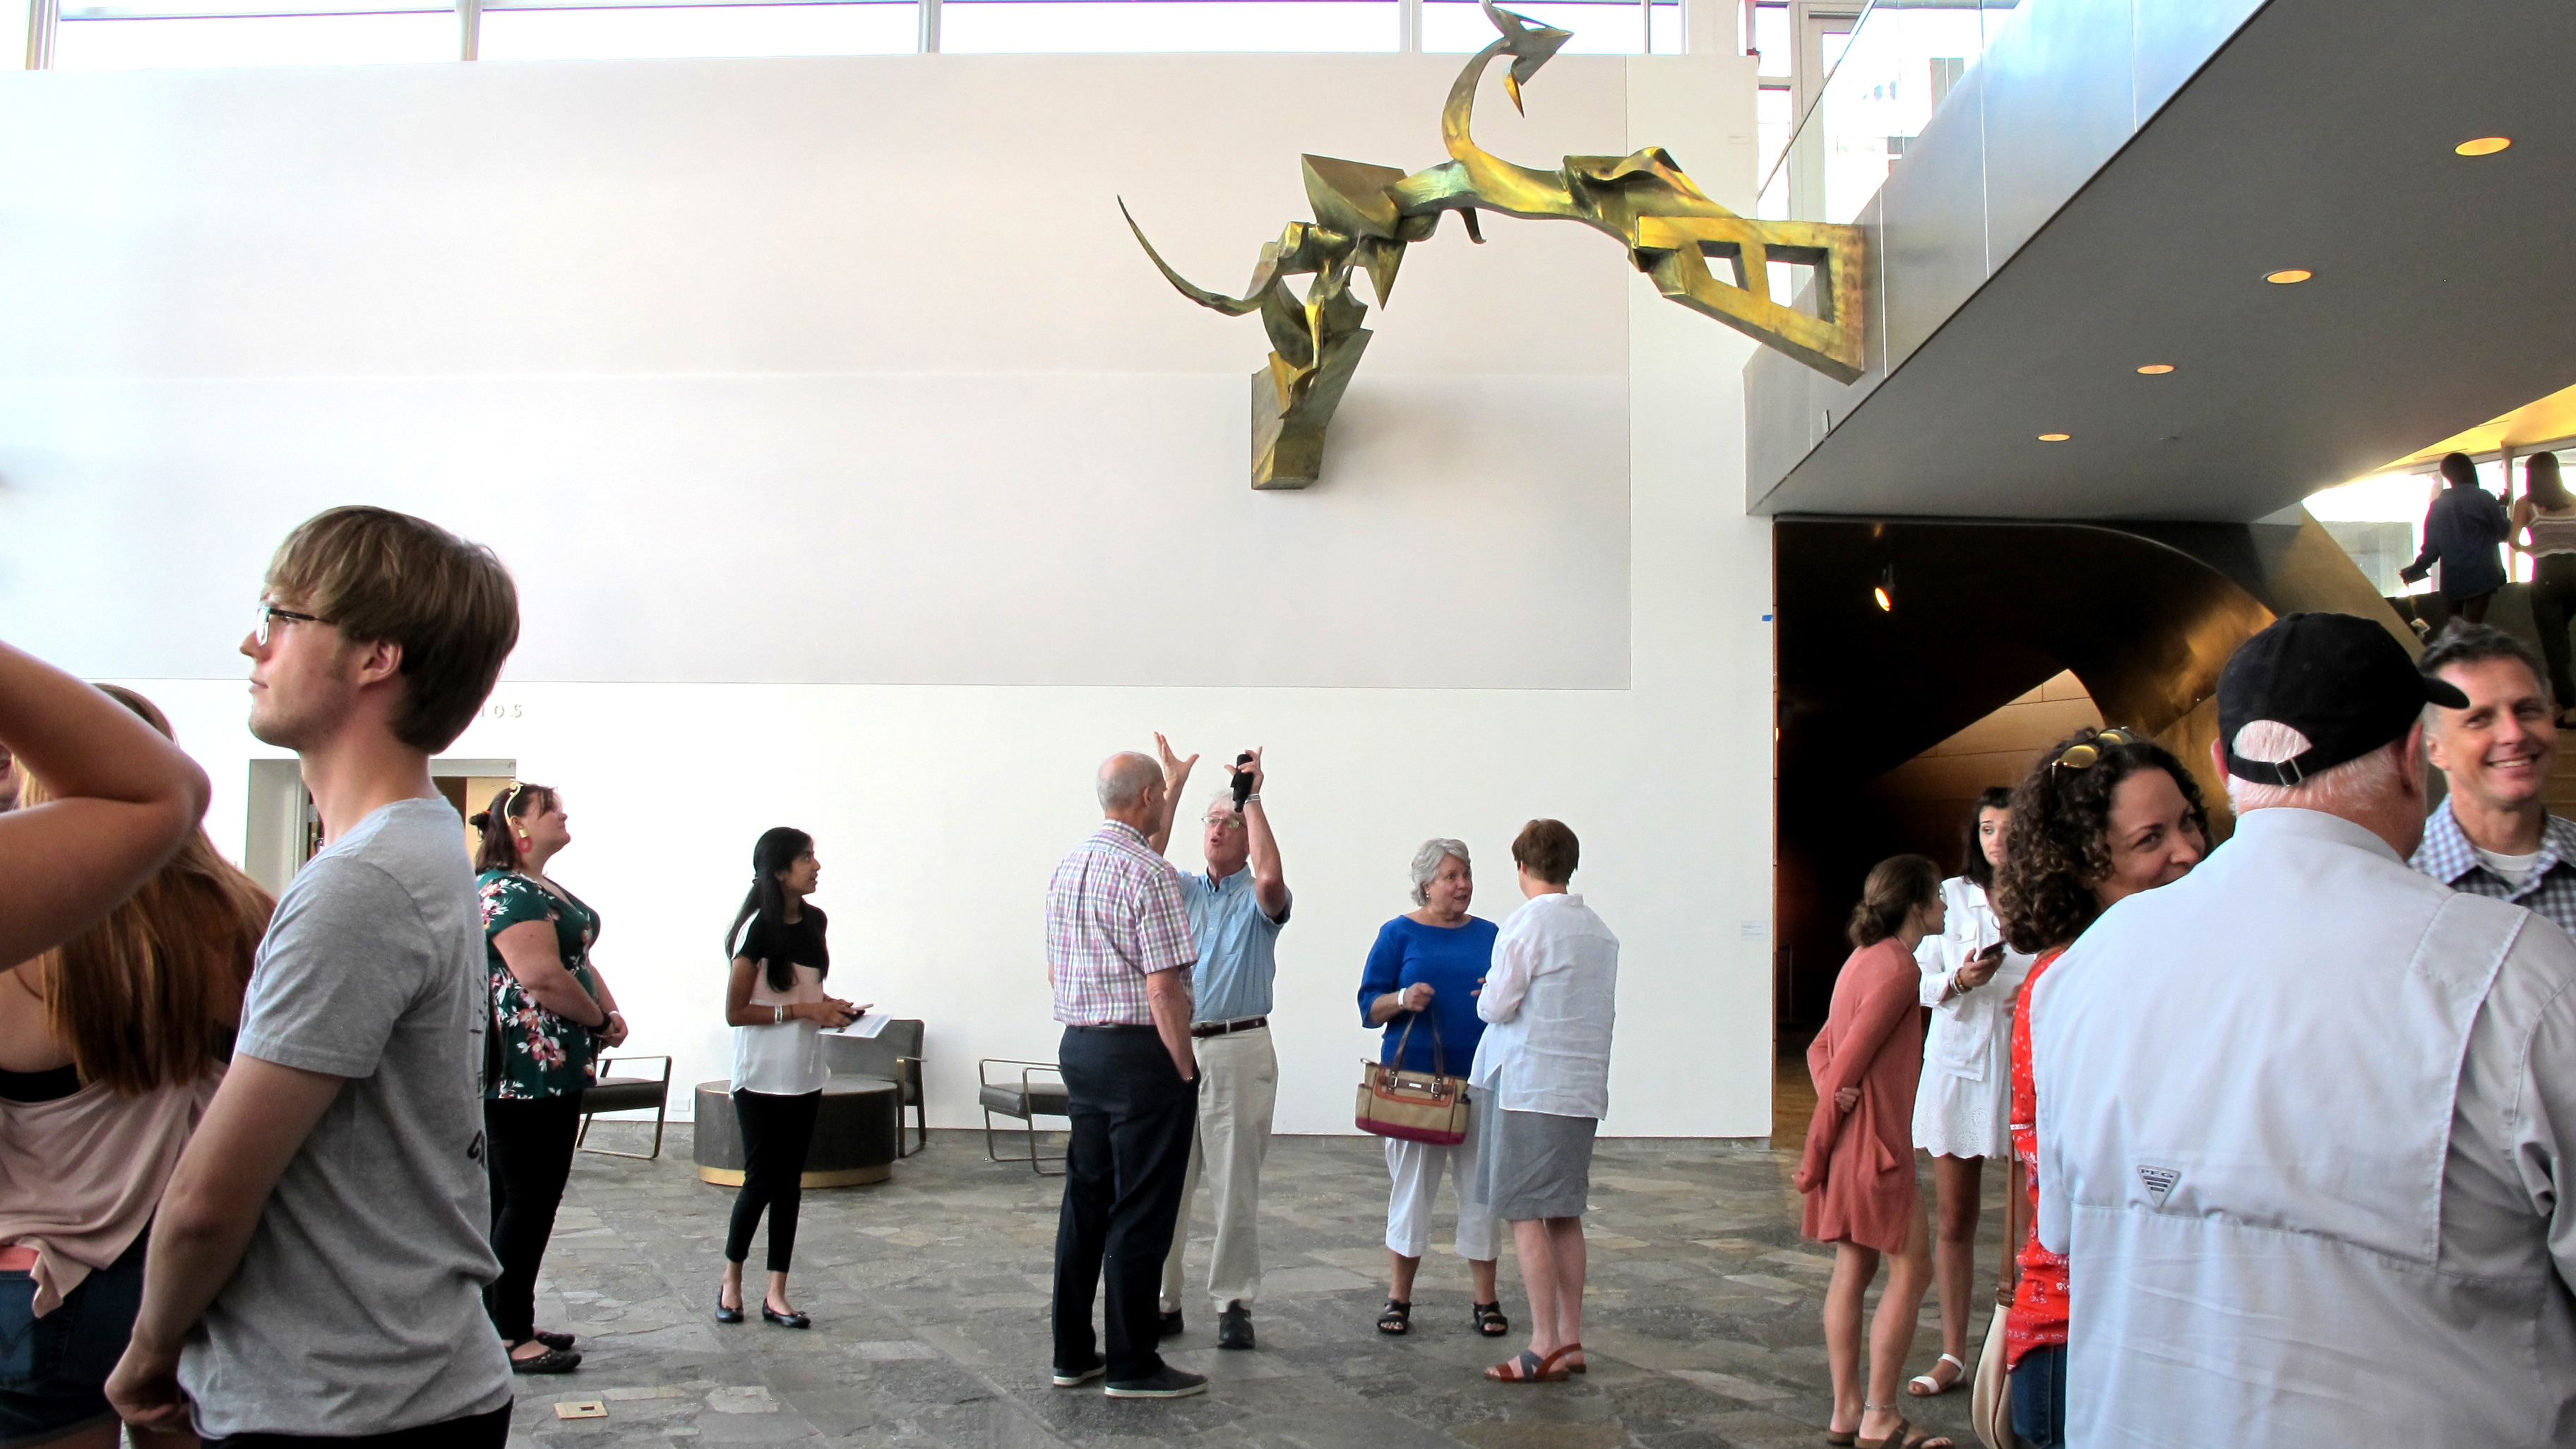 People mingle in the Hunter Museum lobby.